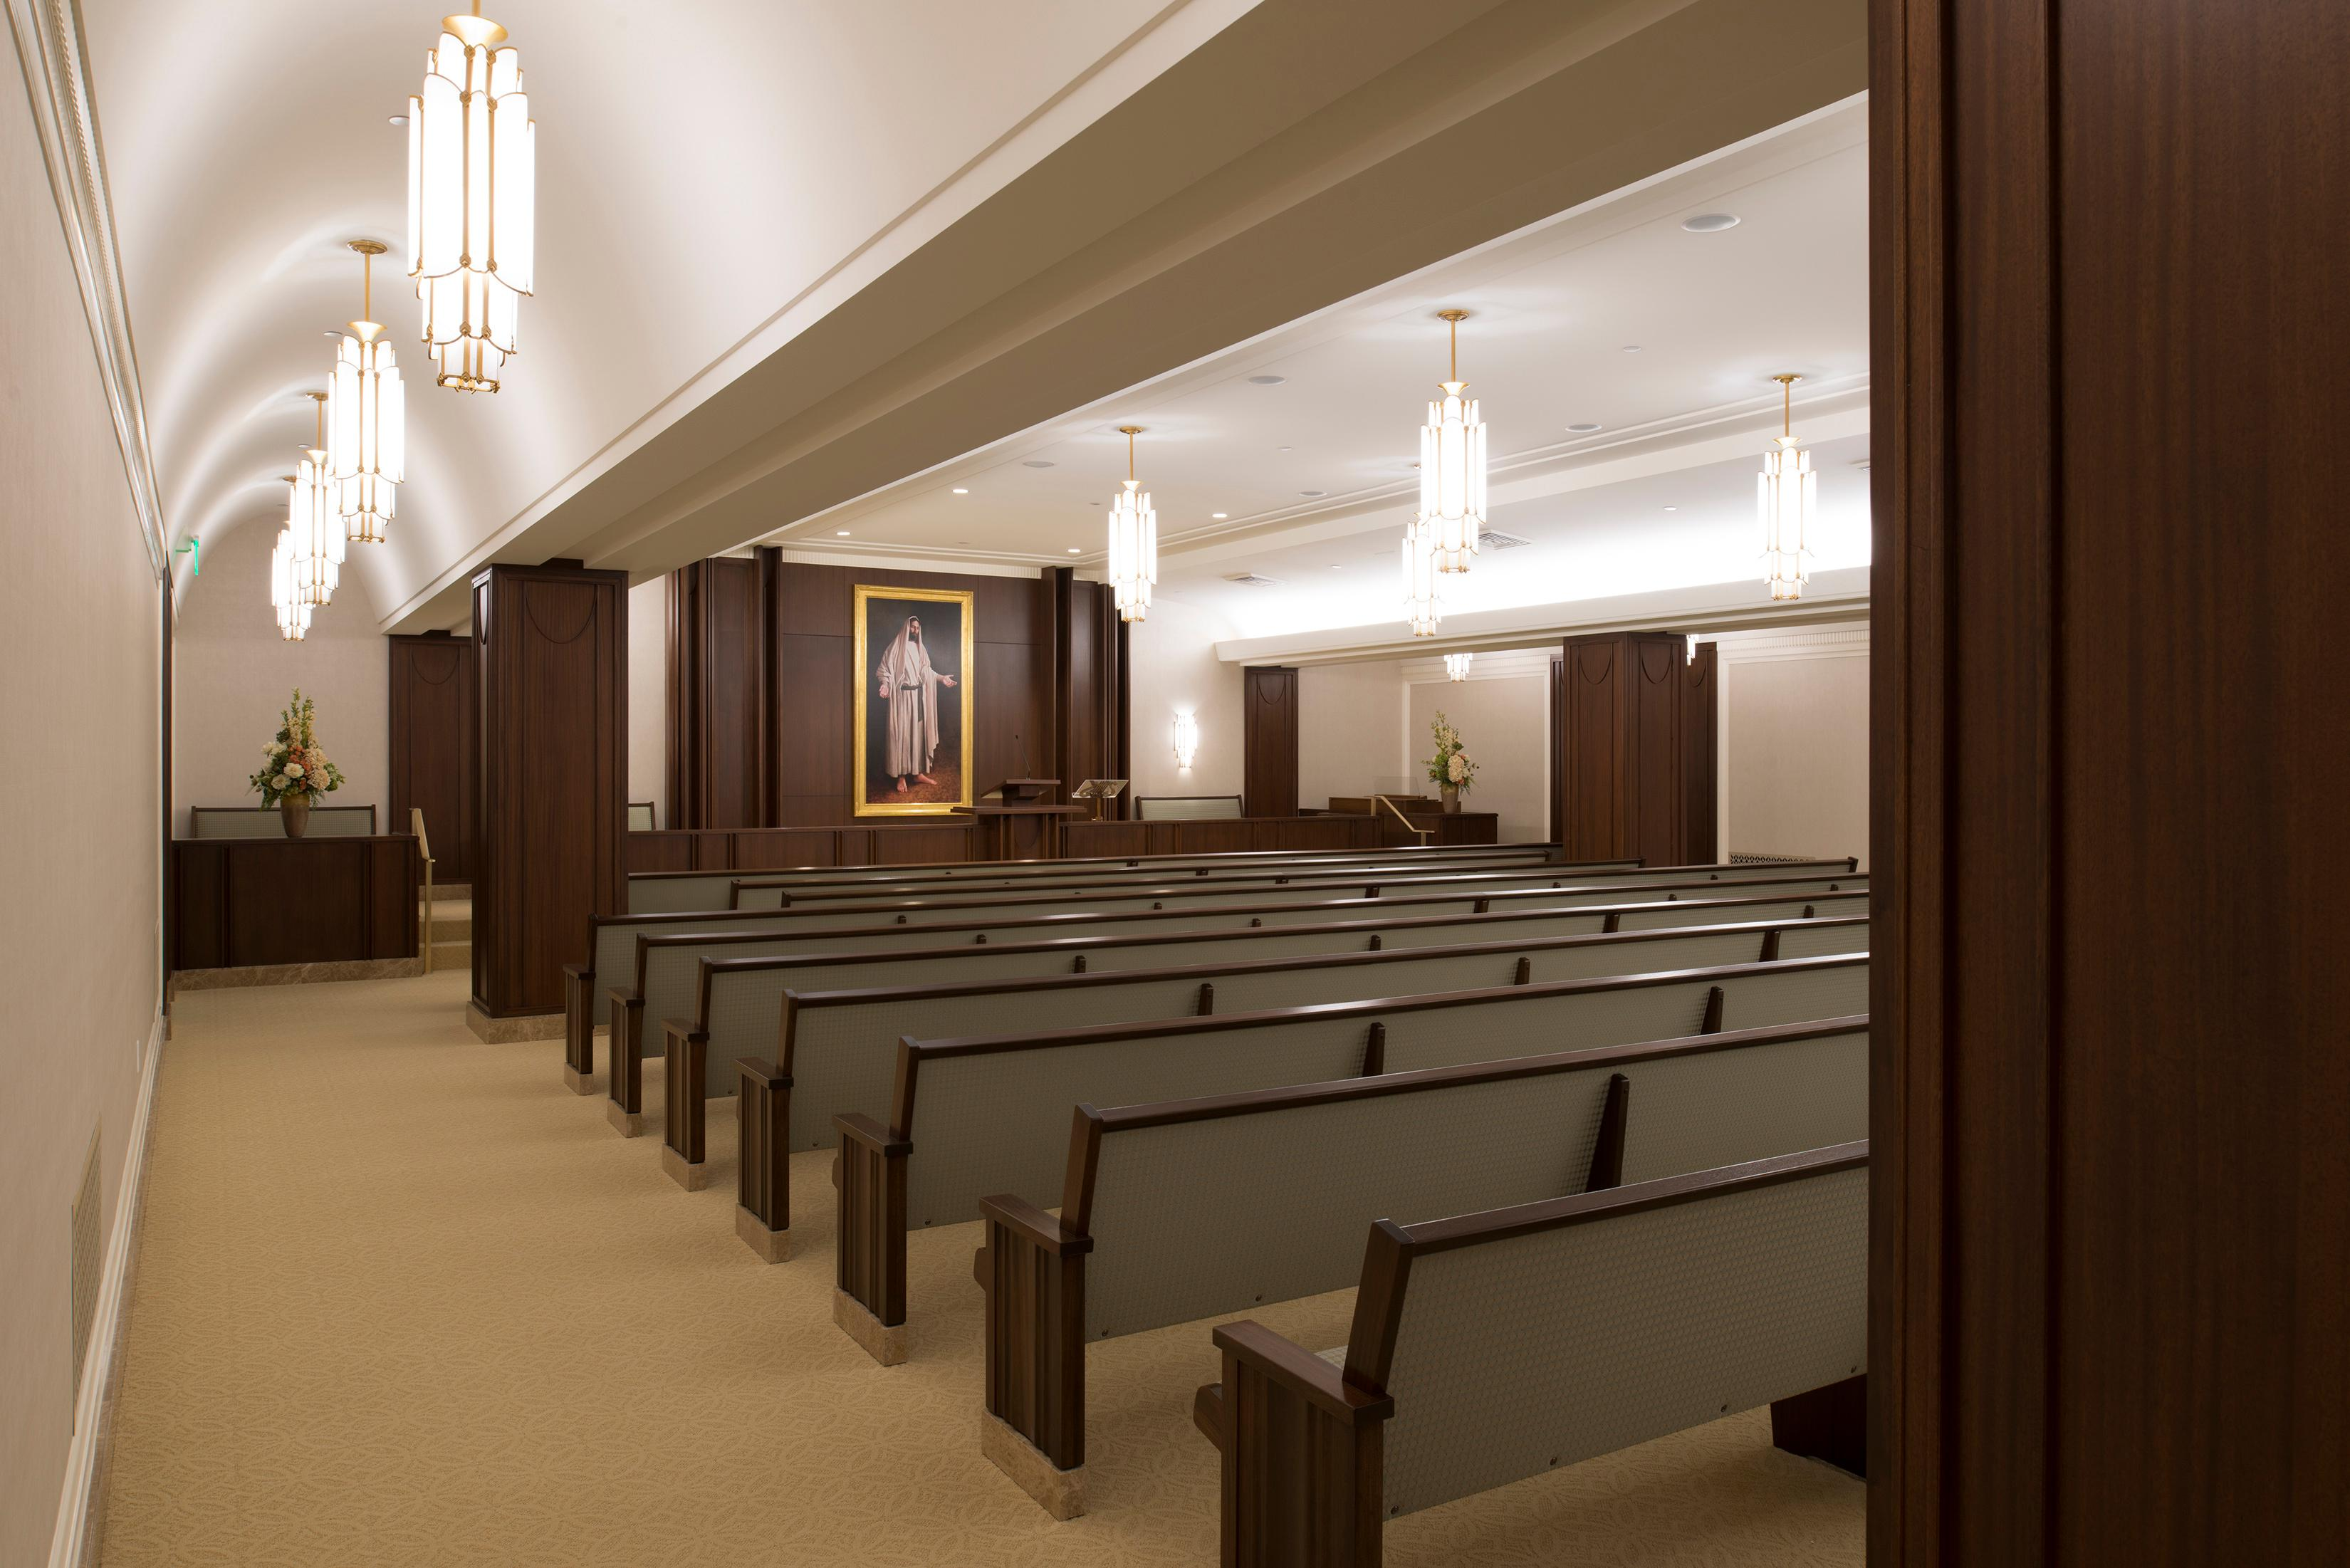 Patrons to the Jordan River Utah Temple meet in this chapel in preparation for further instructions. ©2018 BY INTELLECTUAL RESERVE, INC. ALL RIGHTS RESERVED.